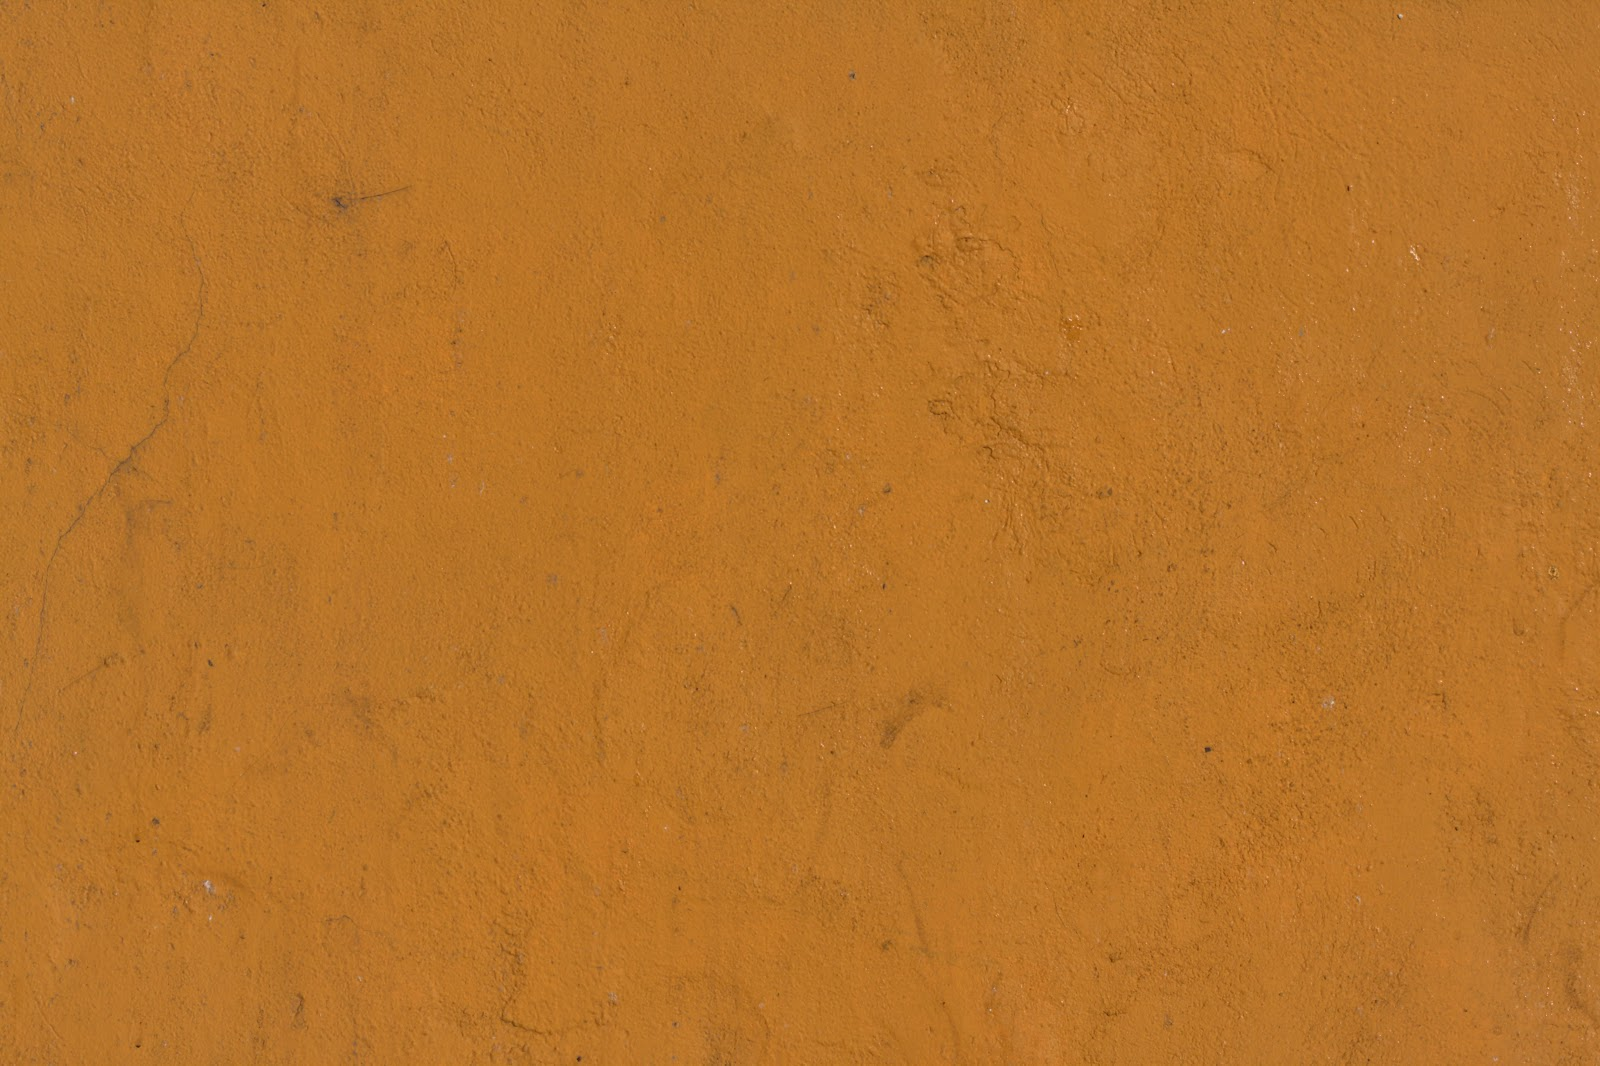 Stucco orange plaster wall texture 4770x3178